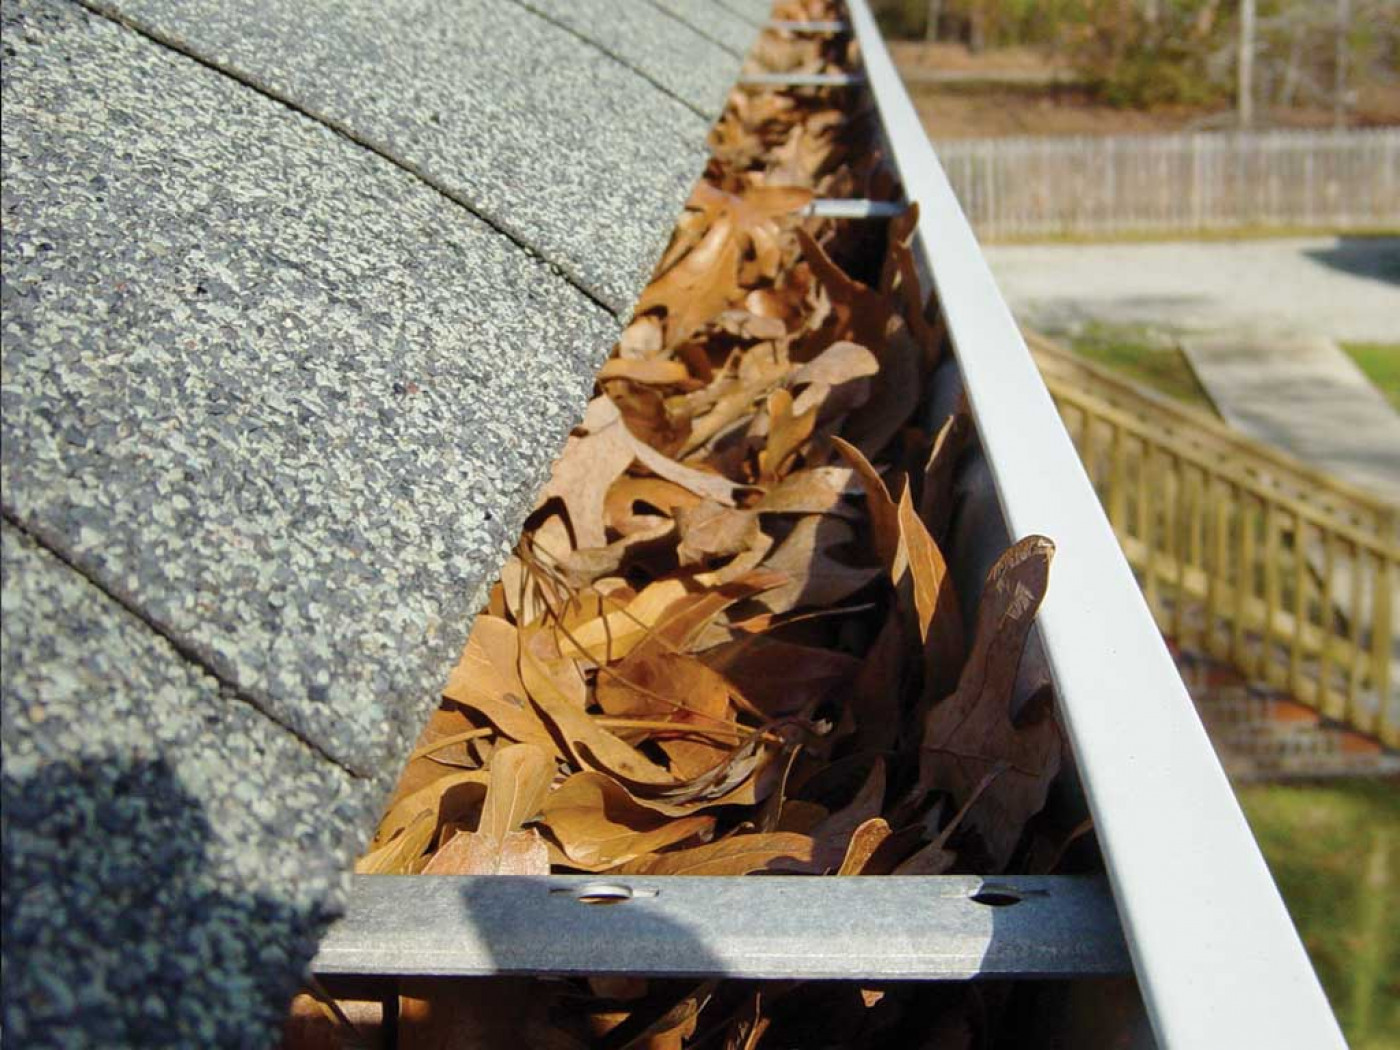 Gutter Care And Cleaning Tips For Homeowners